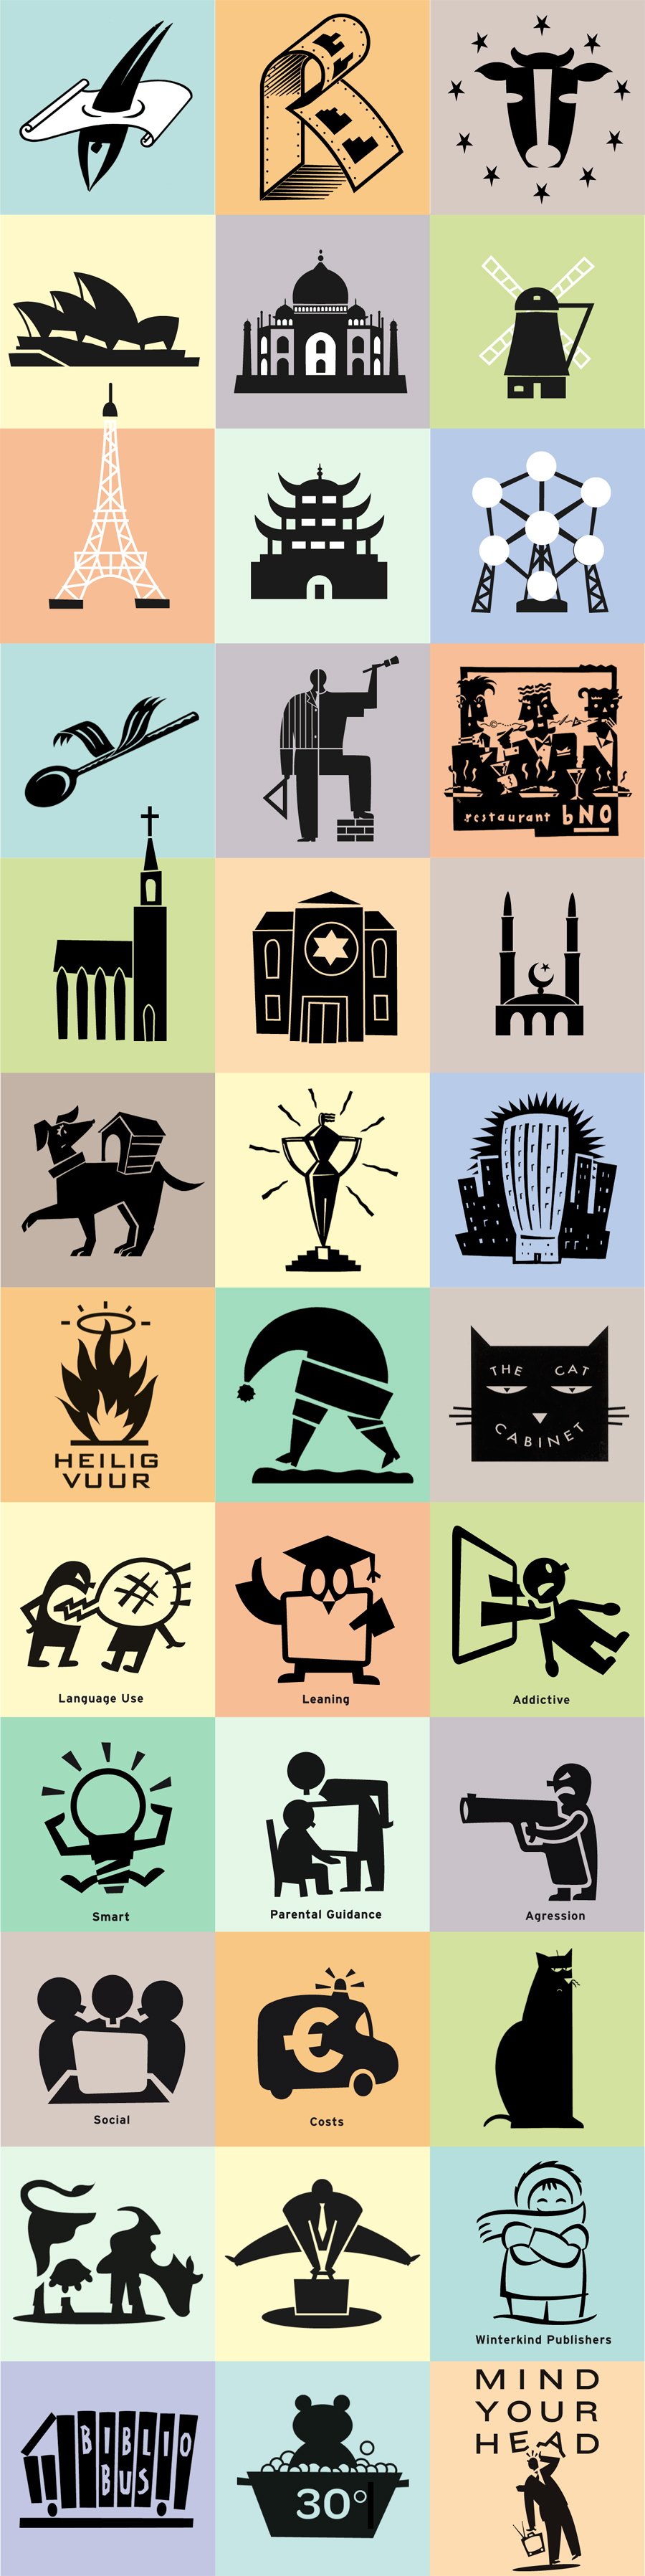 Various Illustrative Pictograms, a diving man, landmarks, tai mahal, Ijffeltower, sydney, opera house, atomium, Dutch windmill, cow, dog in small doghouse